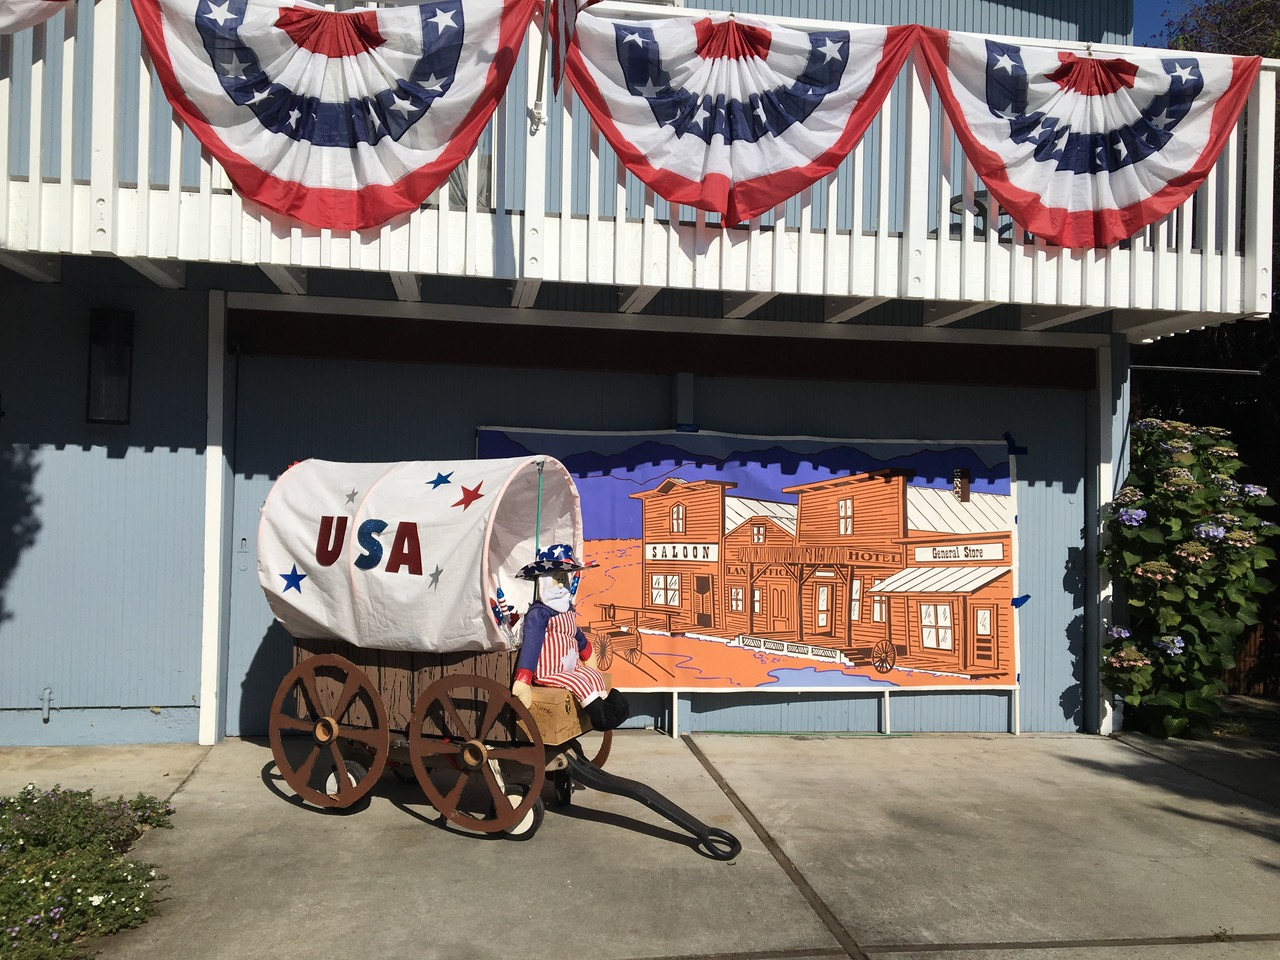 Dianna Richardson's Conestoga wagon is featured in her neighborhood's Fourth of July parade that she organizes. The event is partially funded by the city of Palo Alto. Photo courtesy Dianna Richardson.